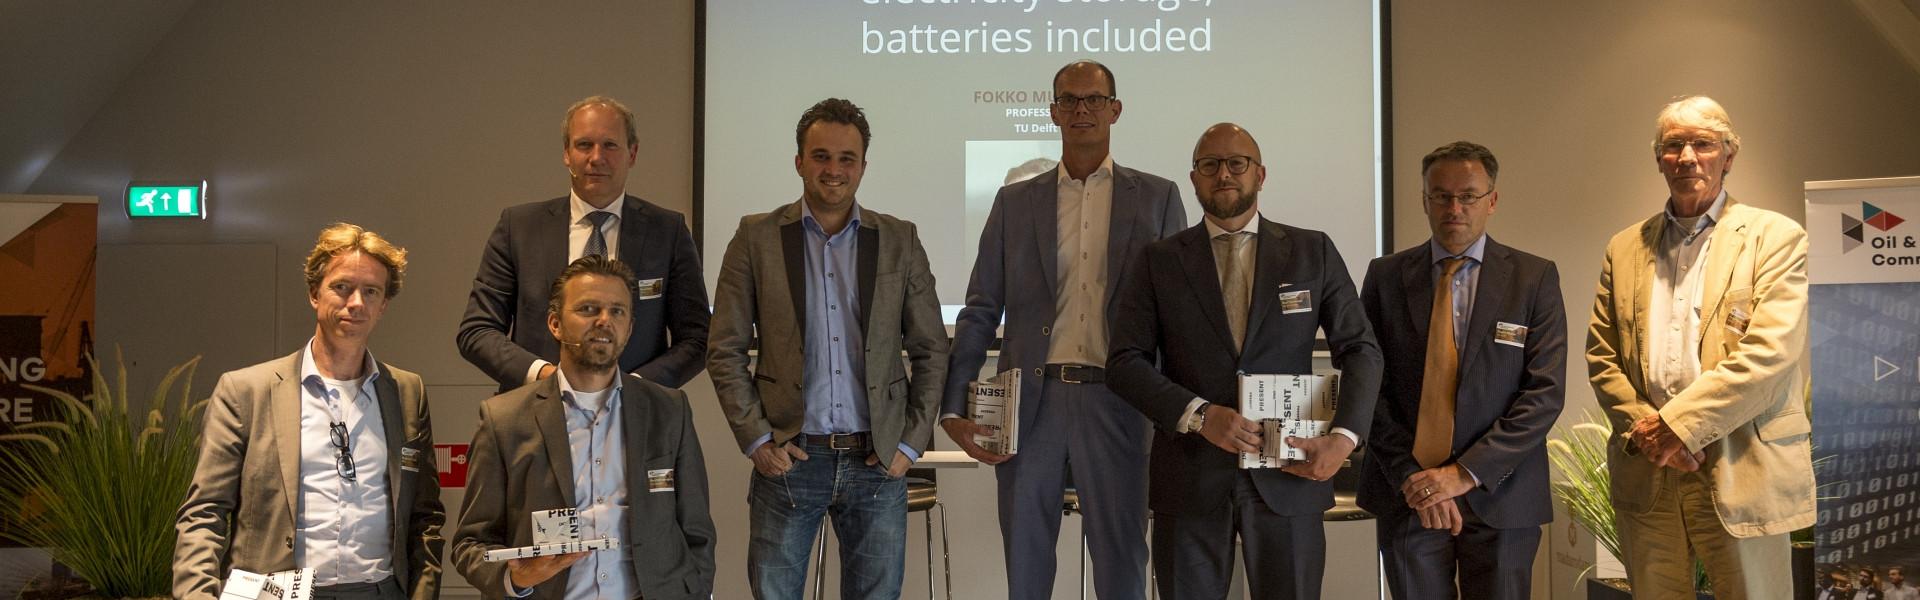 Report Oil & Gas Reinvented Community Event Energy Storage